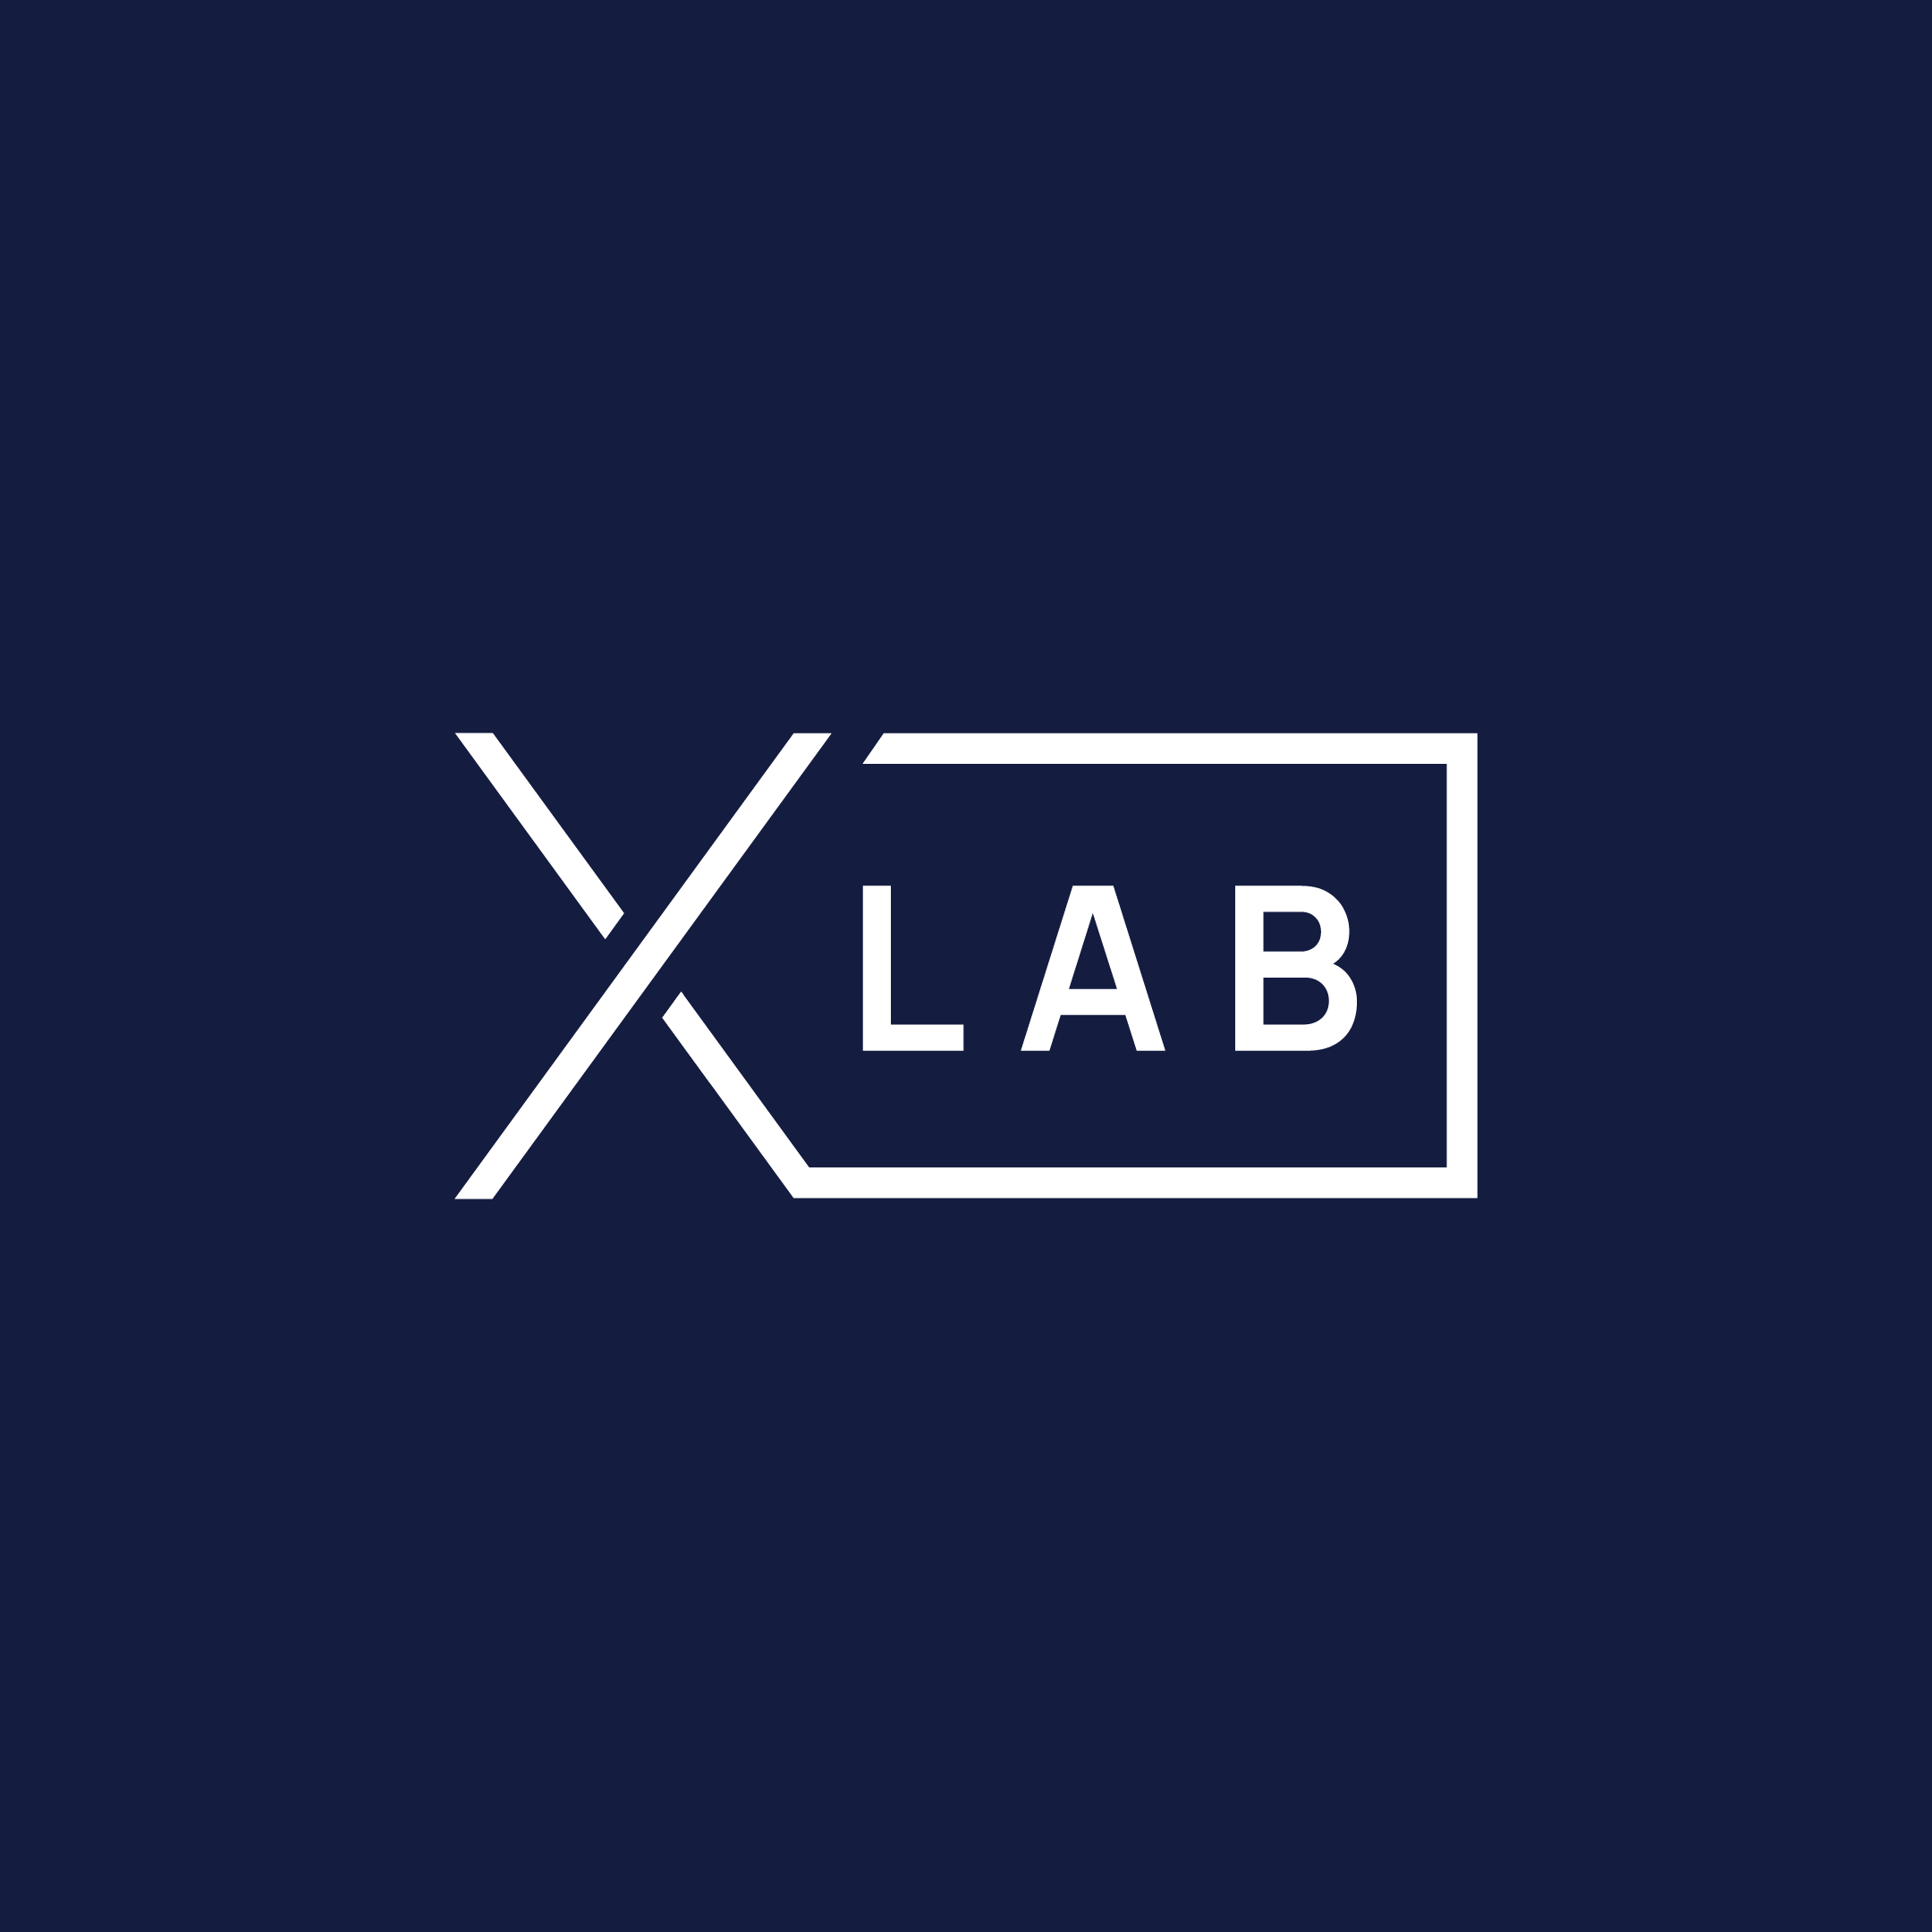 Logo Experience lab - Space blue